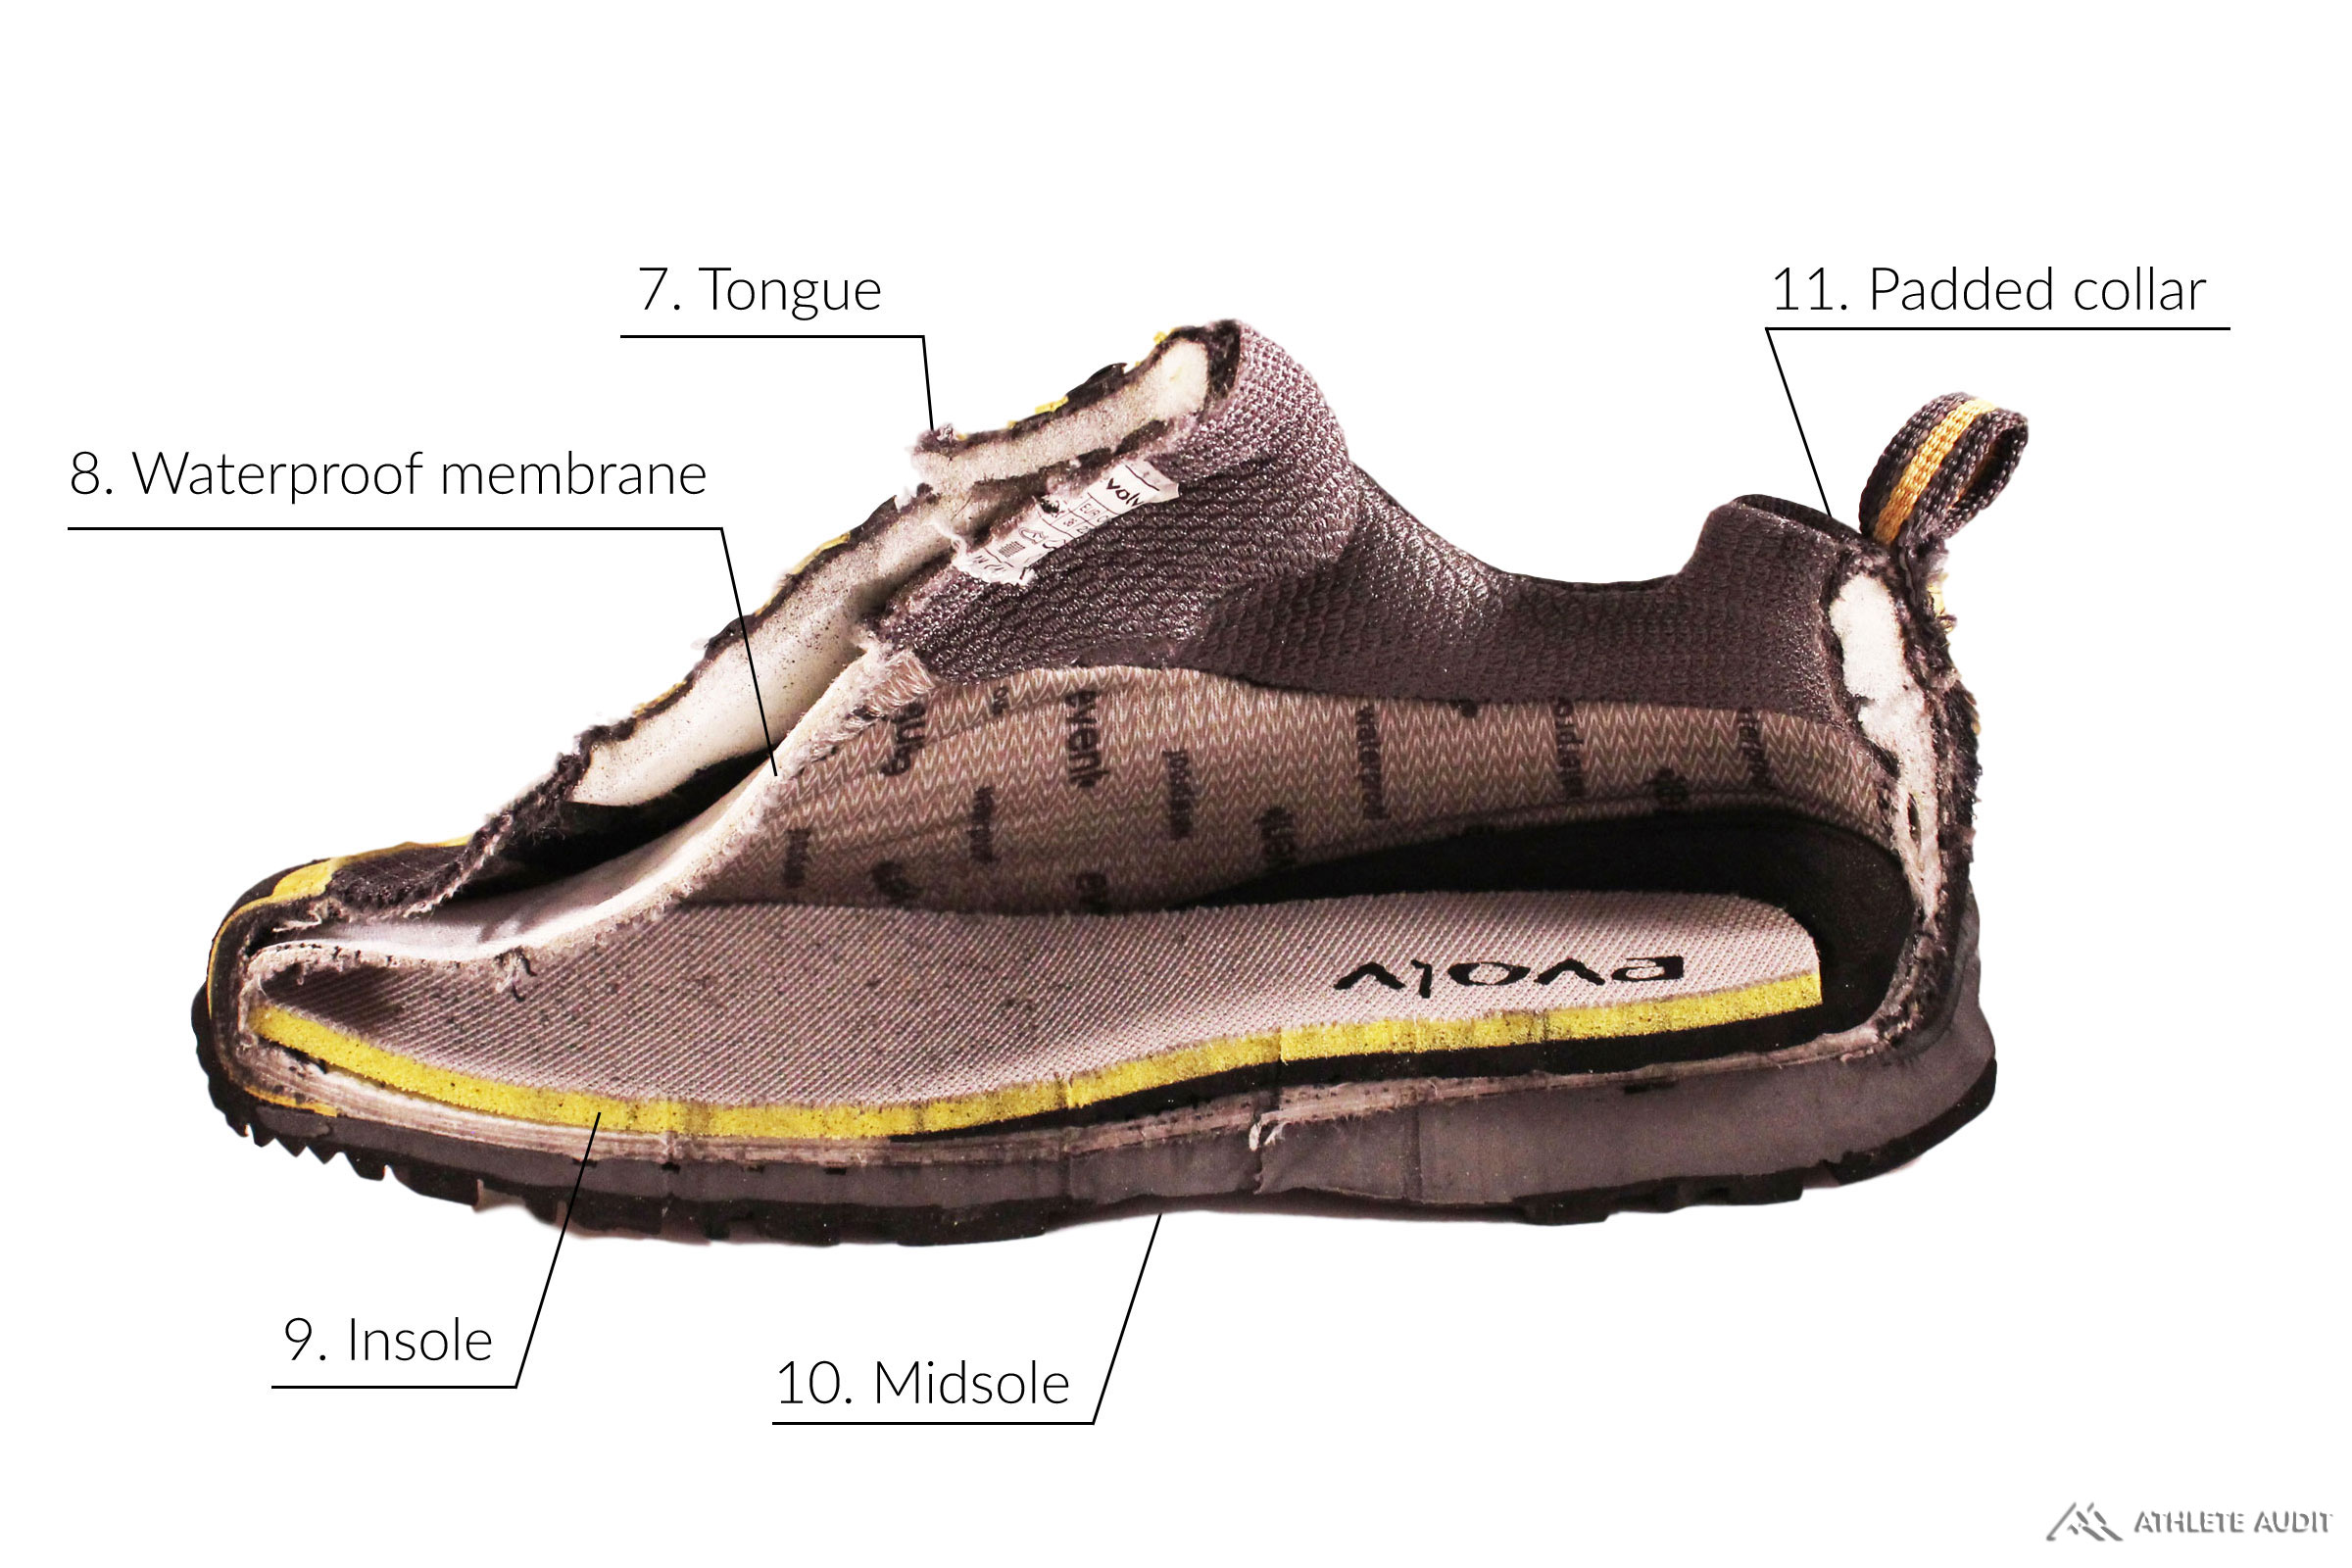 Parts of an Approach Shoe - Inside - Anatomy of an Athletic Shoe - Athlete Audit